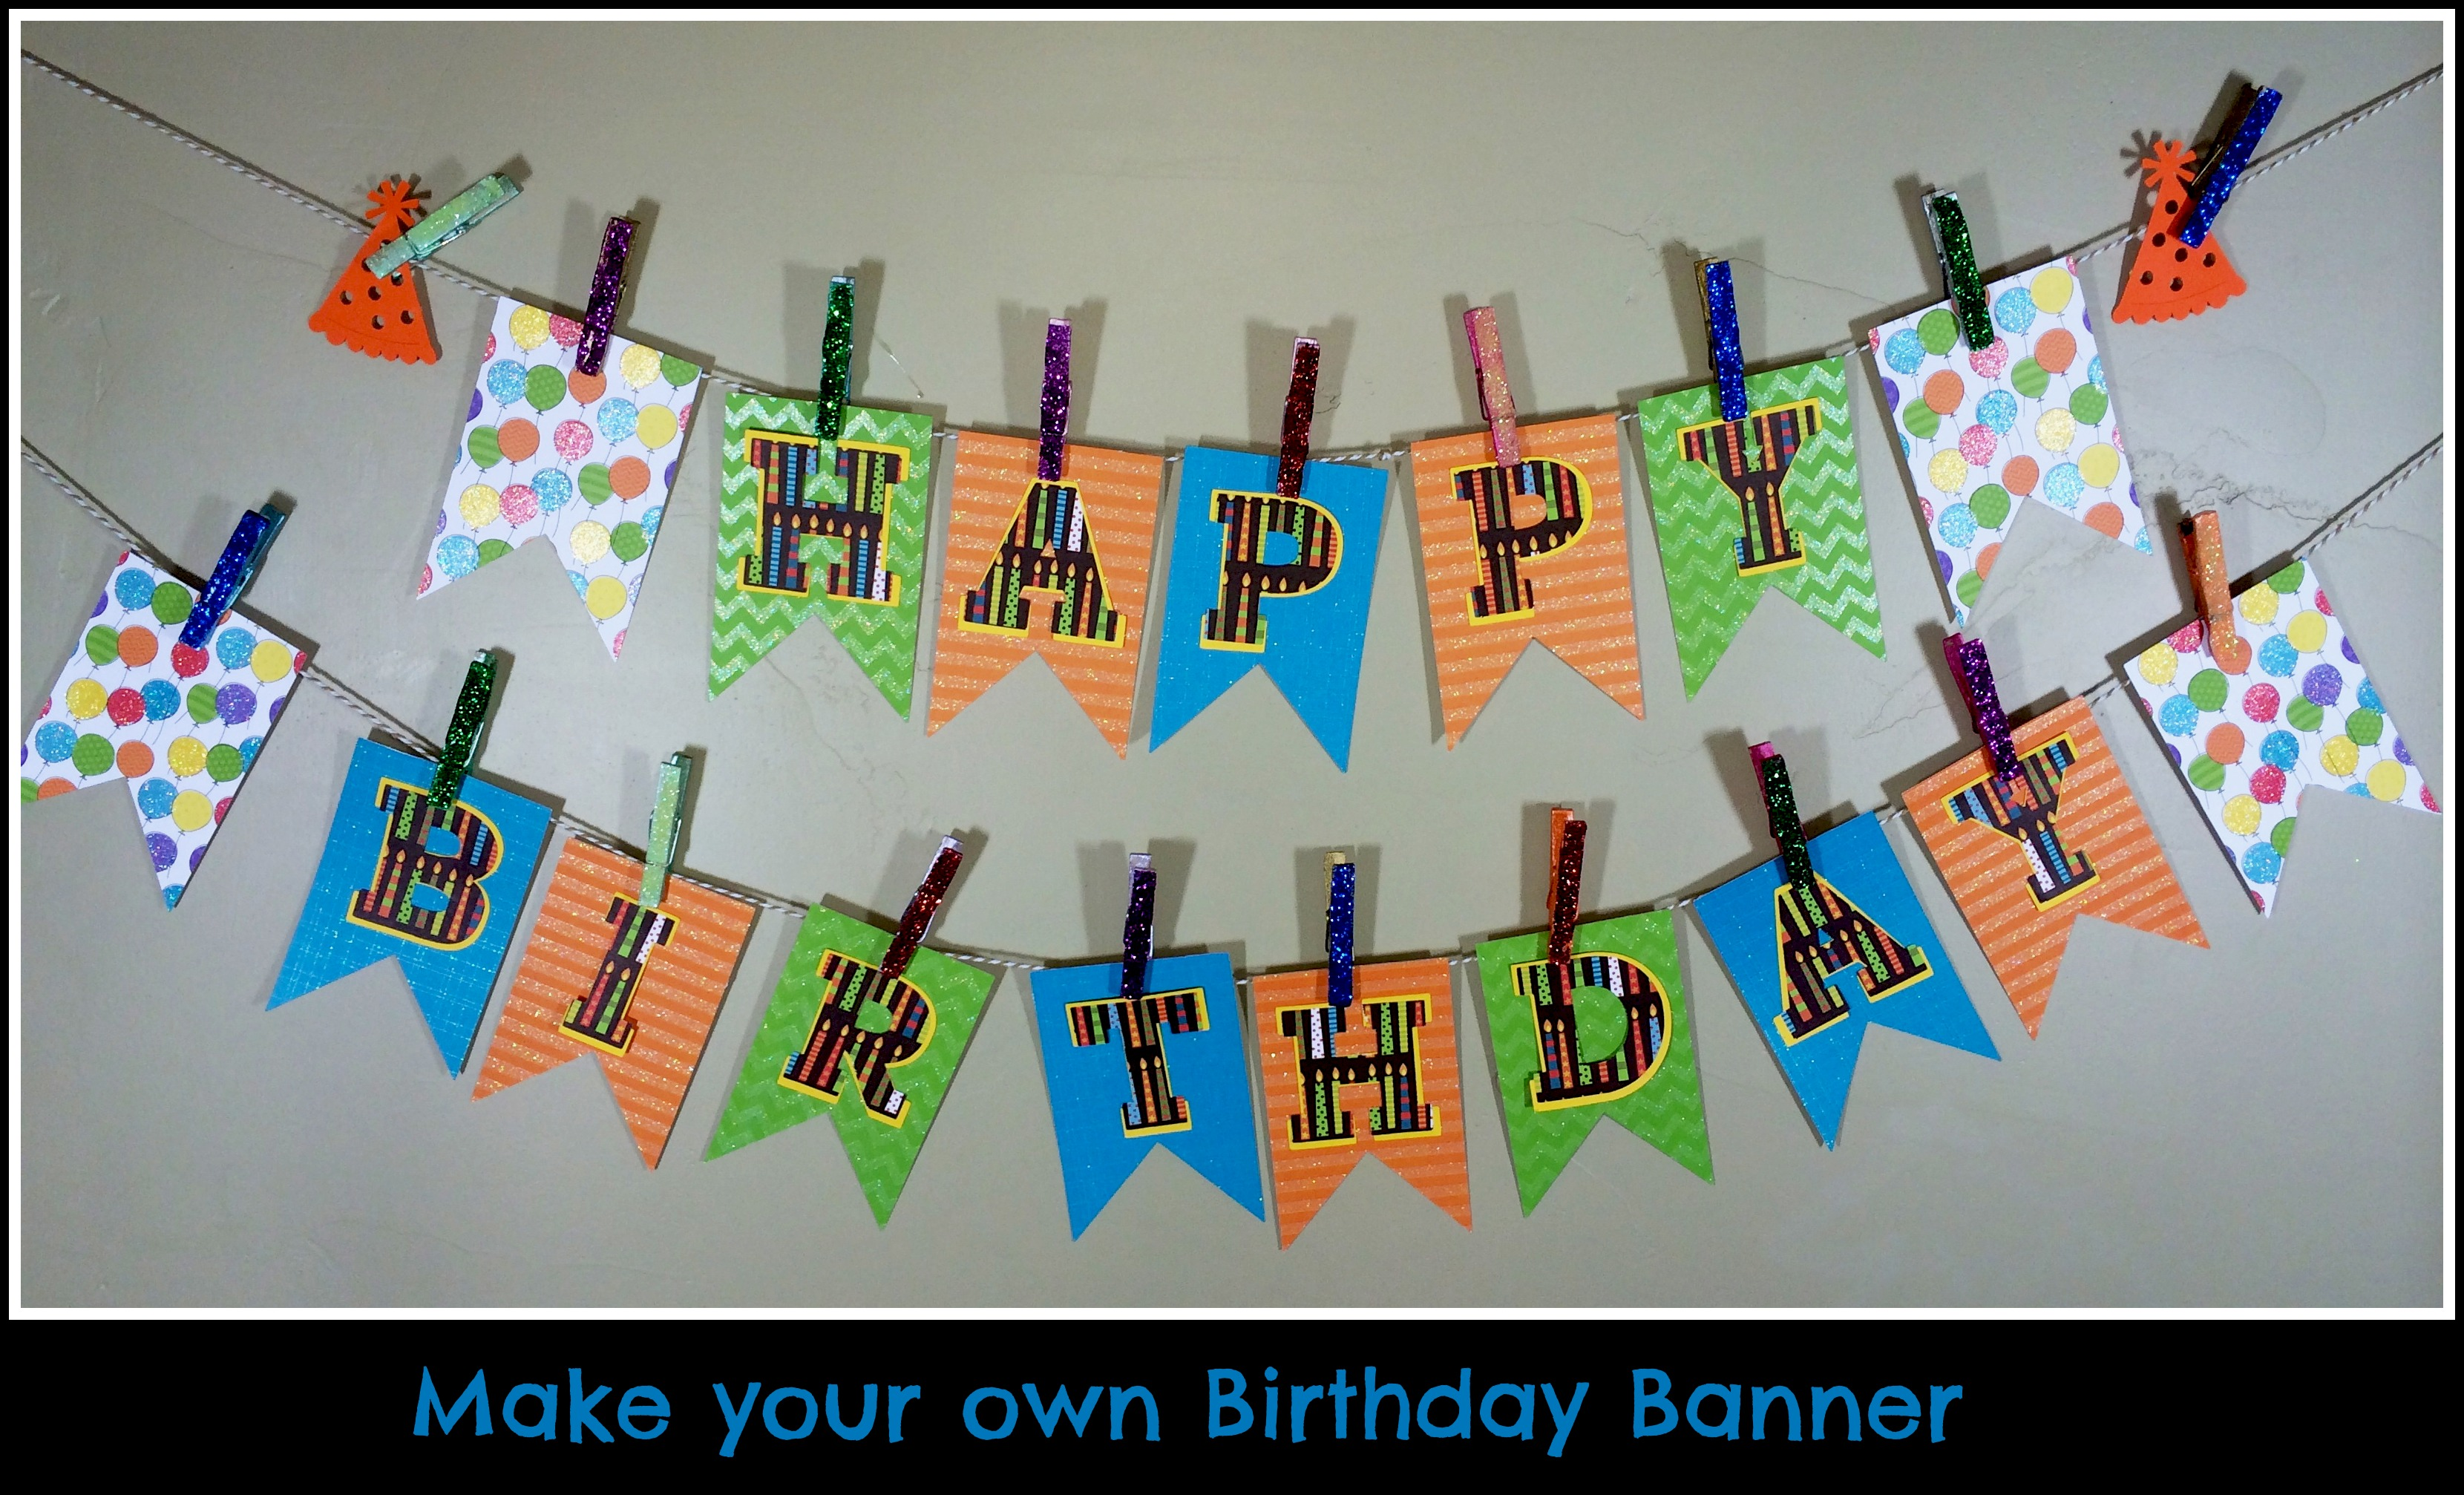 create birthday banner with photo ; create-birthday-banner-make-your-own-birthday-banner-152992